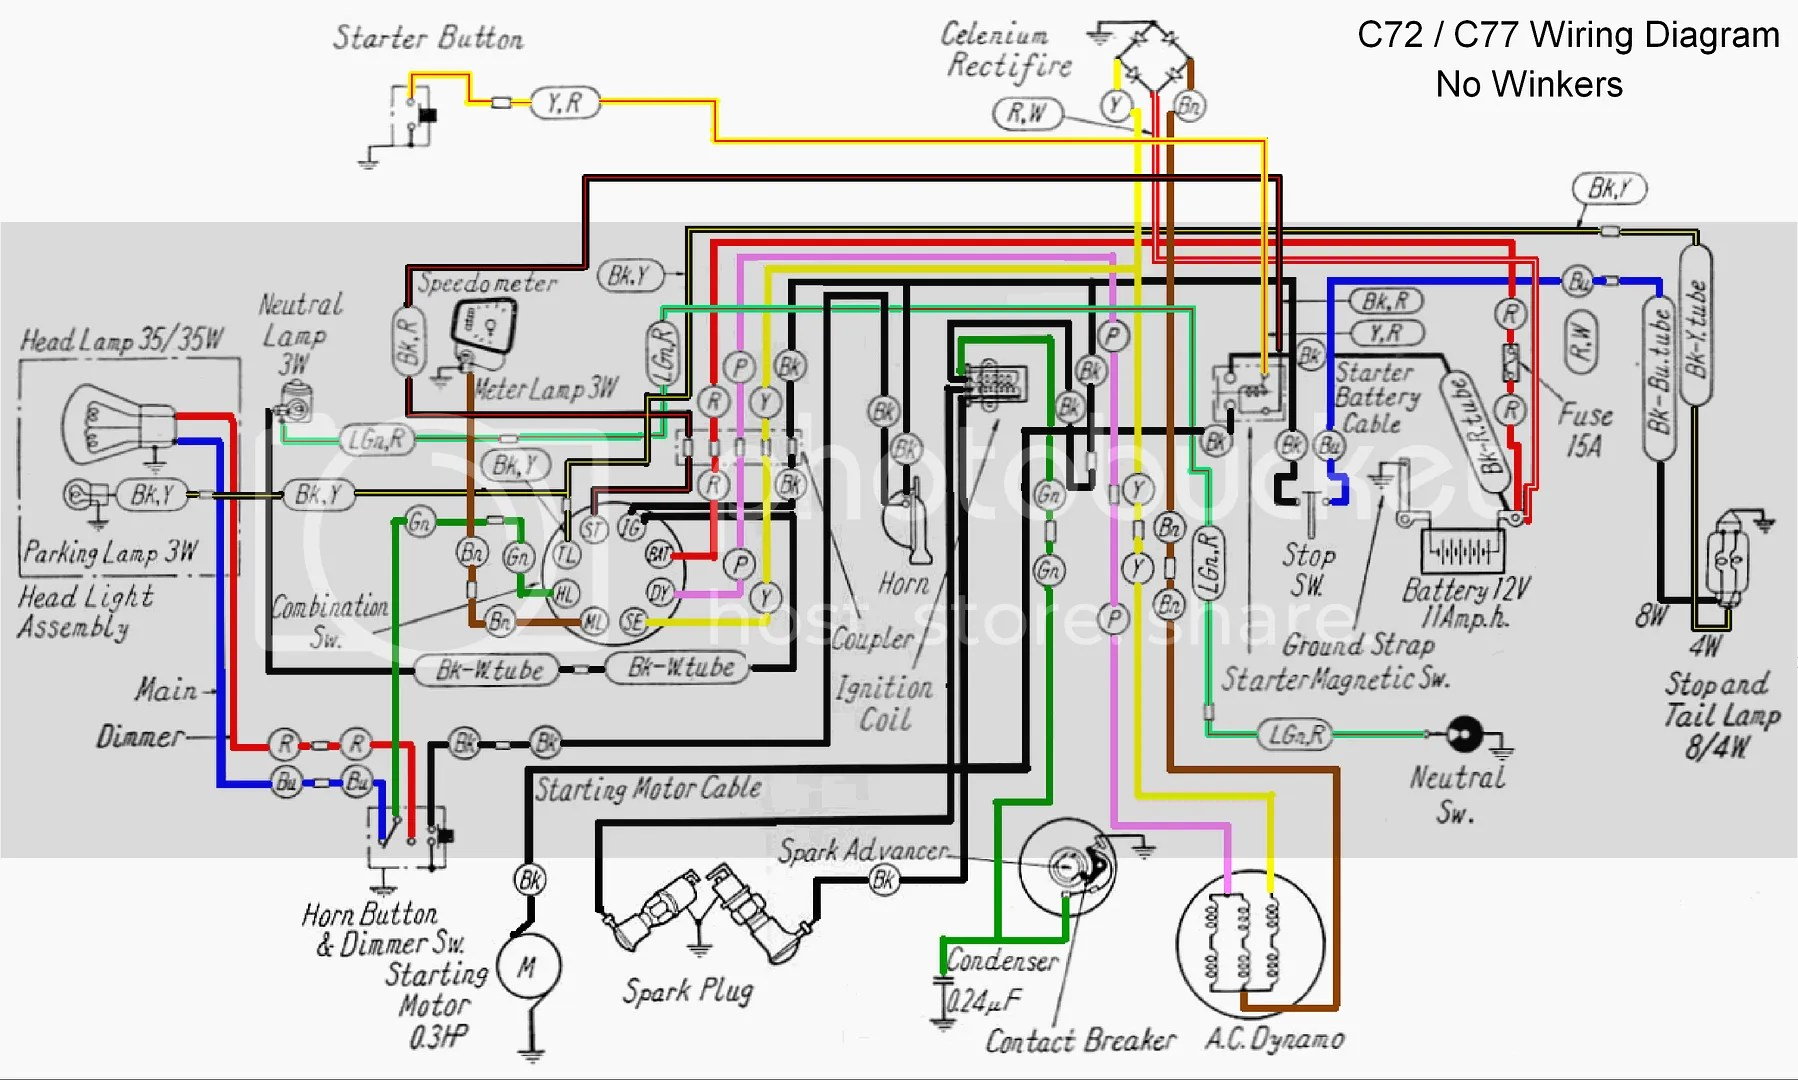 hight resolution of i was goofing off at work one day during my lunch hour and i took a ca77 wiring diagram and colorized it helps me see follow the wires much better than